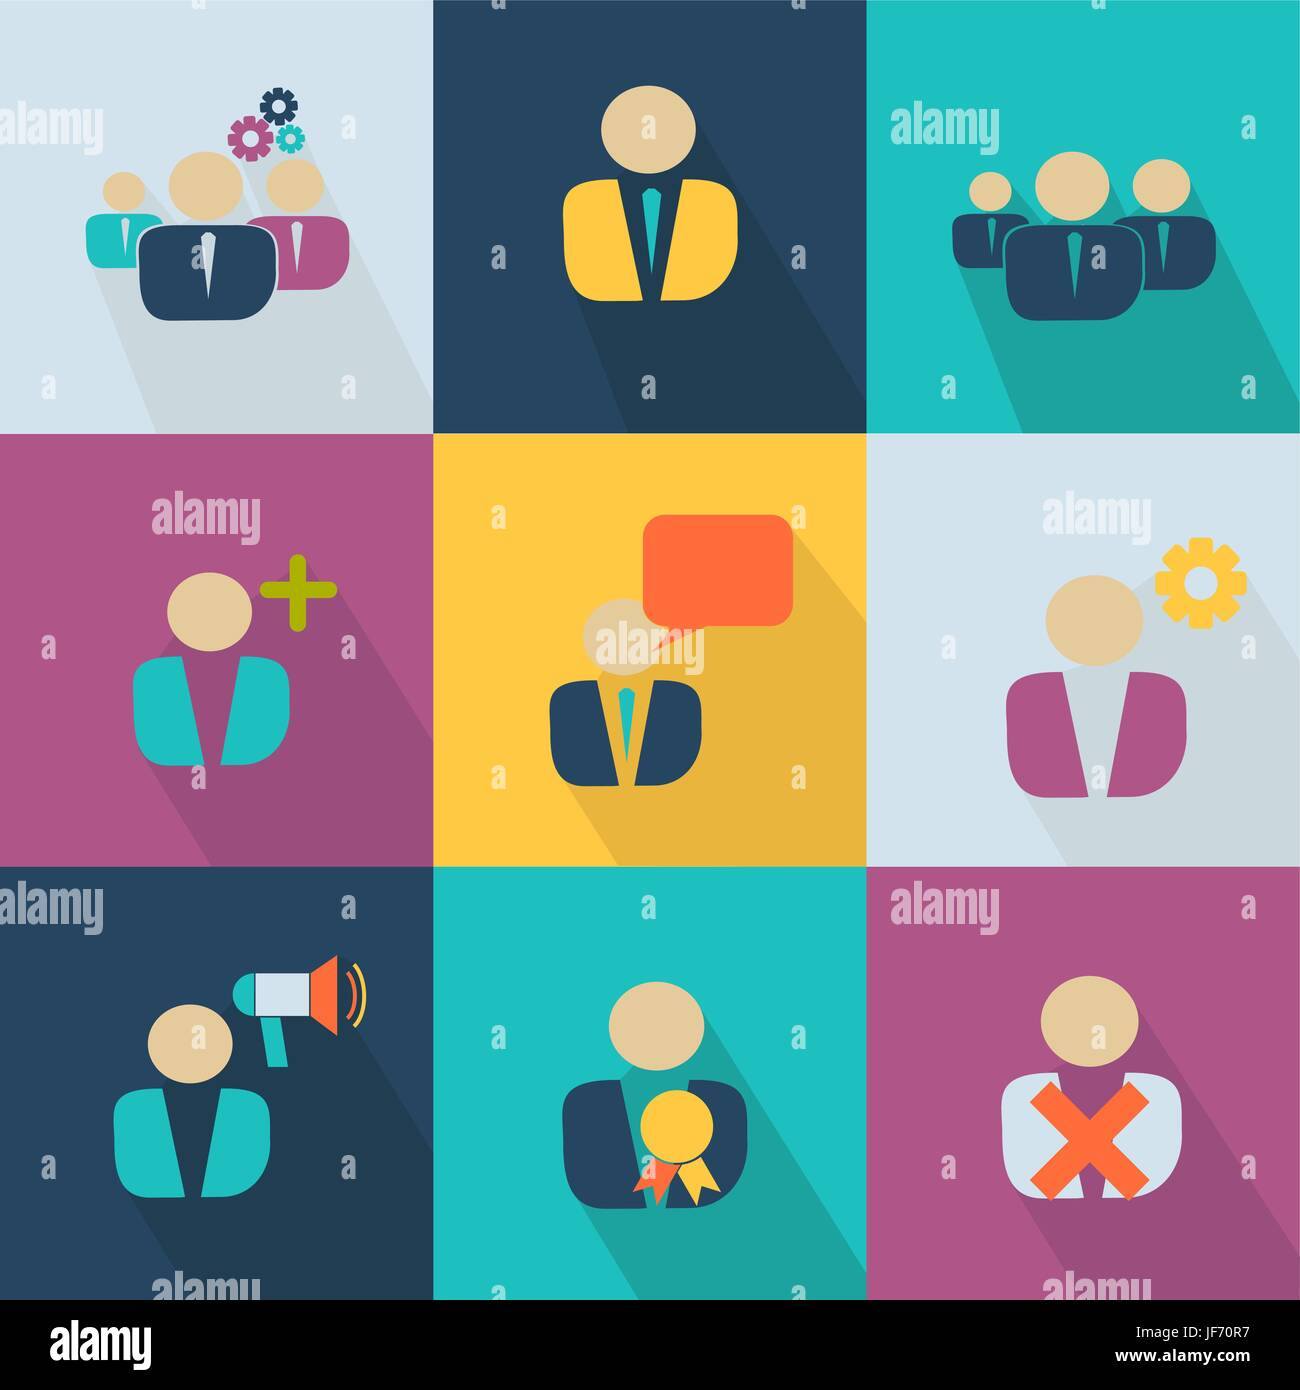 Business icon - style web 2.0 colorful - Stock Vector